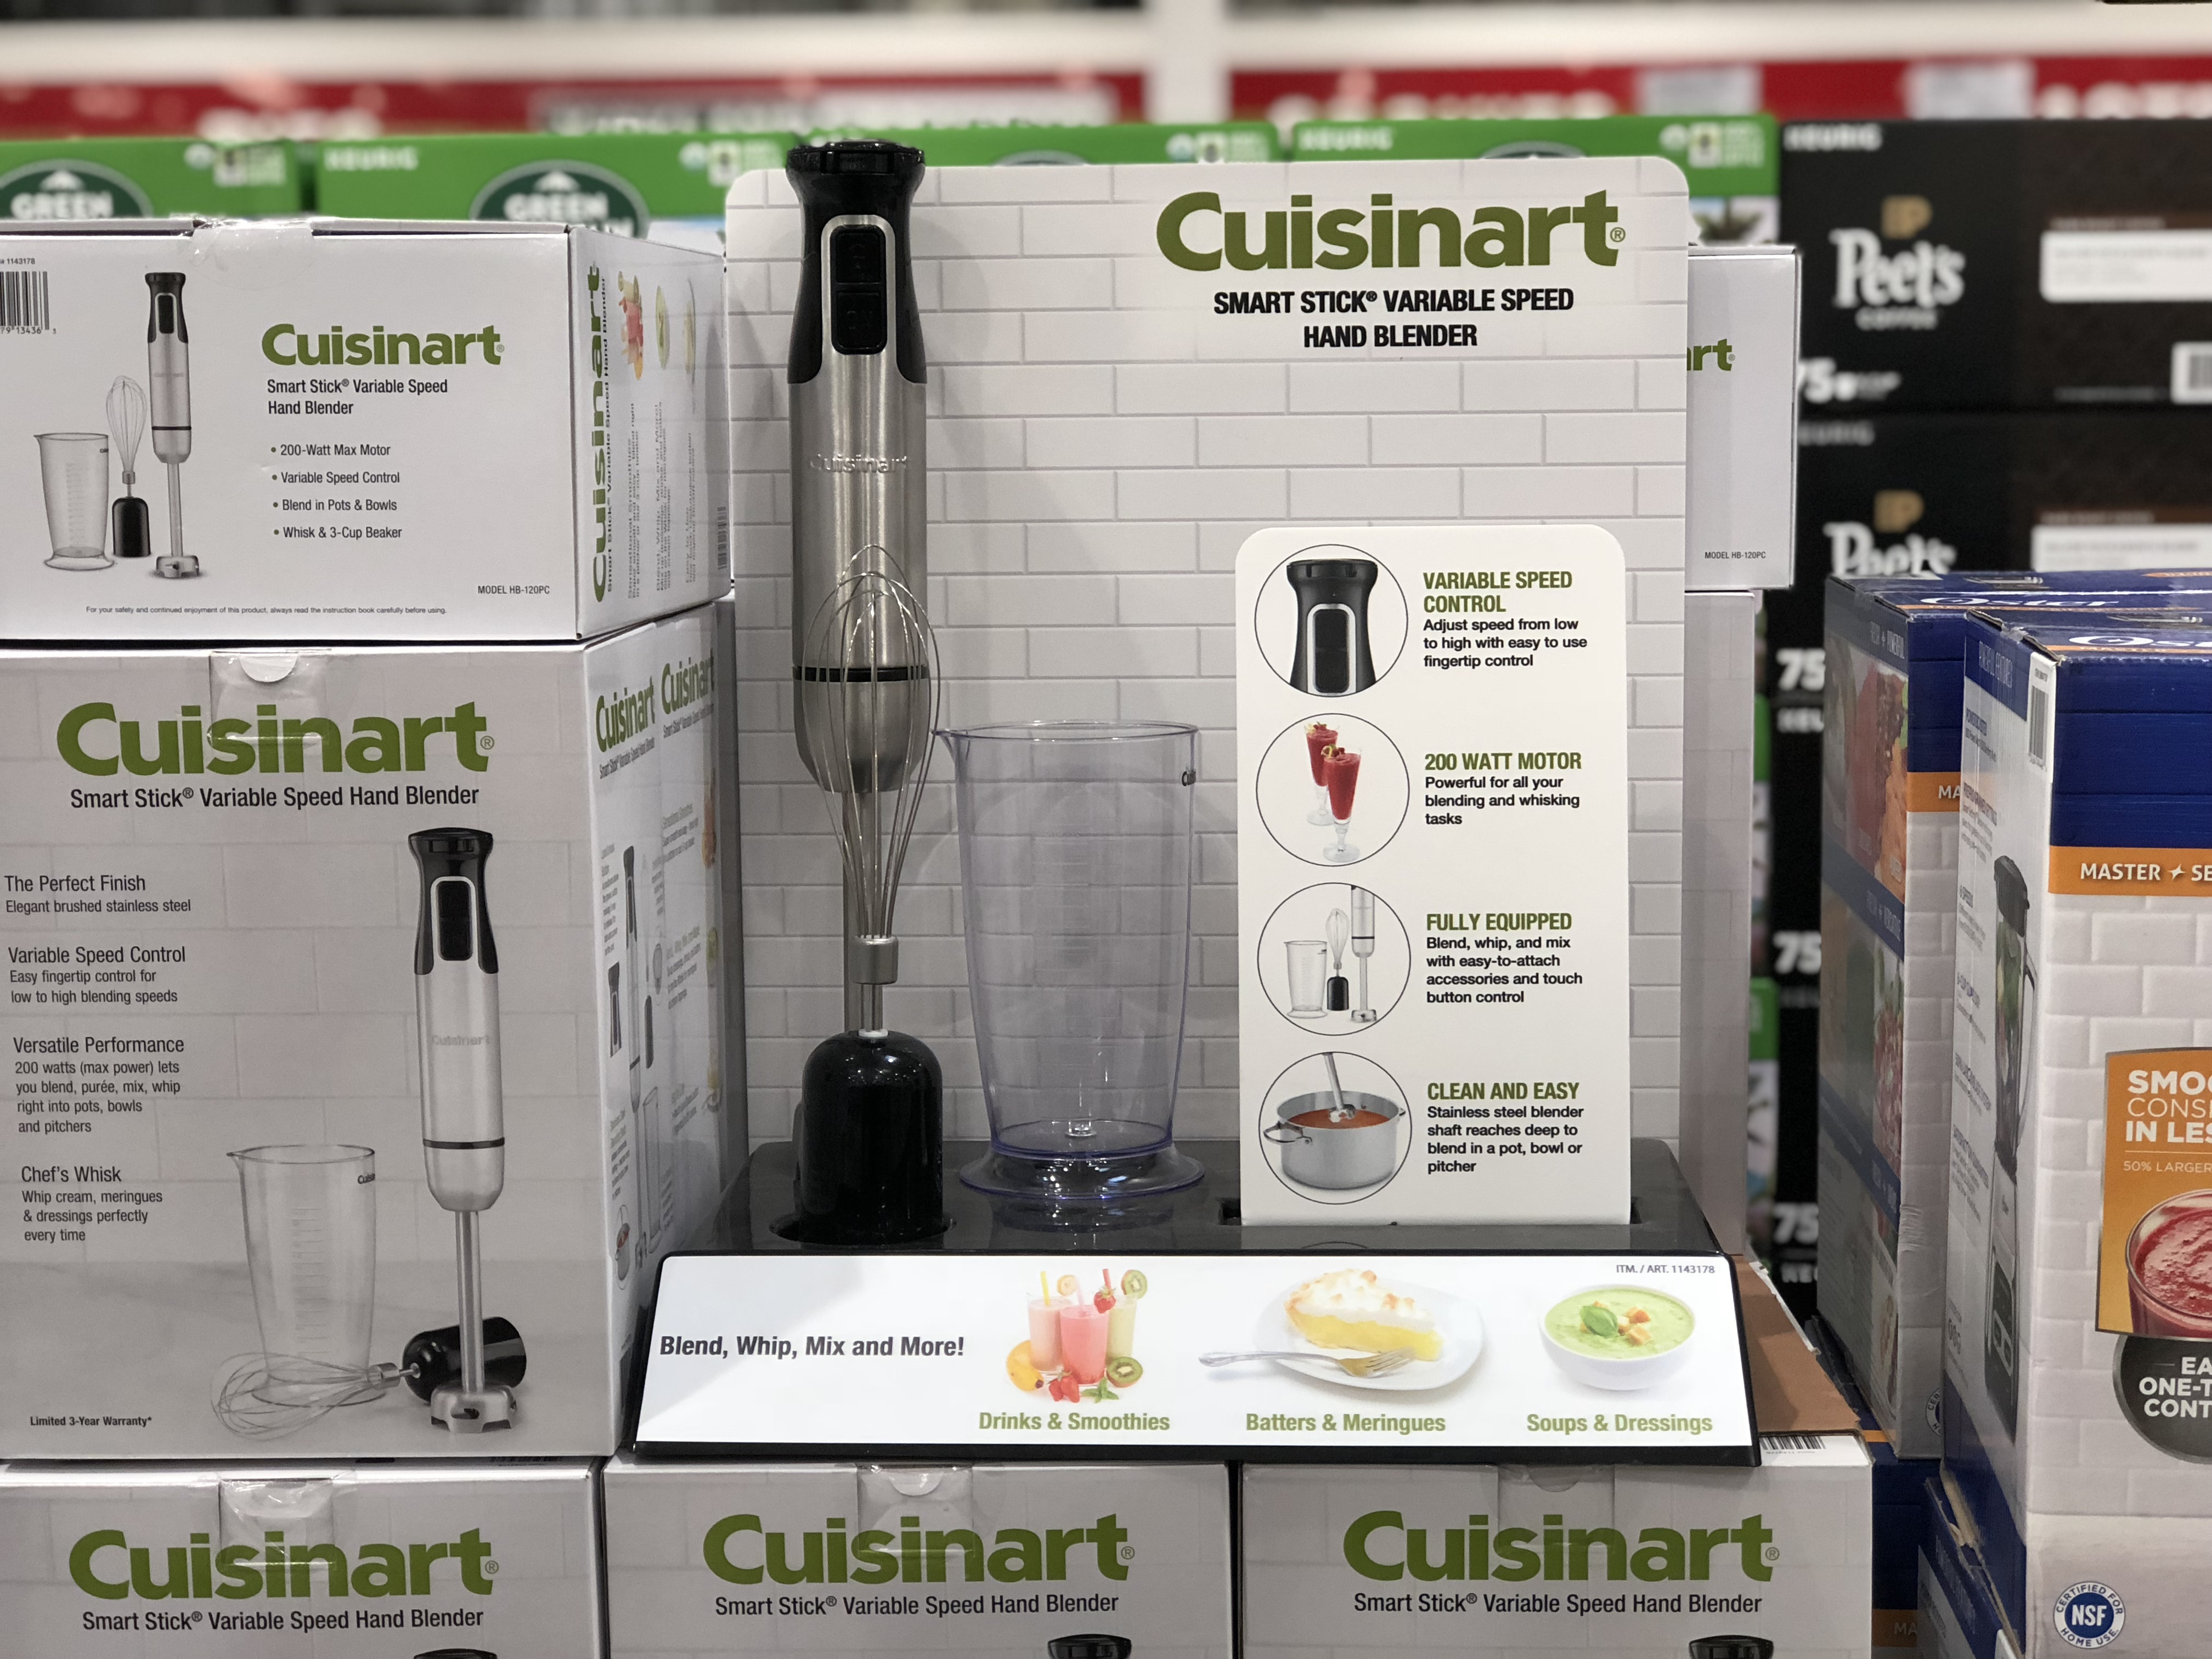 Cuisinart Smart Stick Blender at Costco